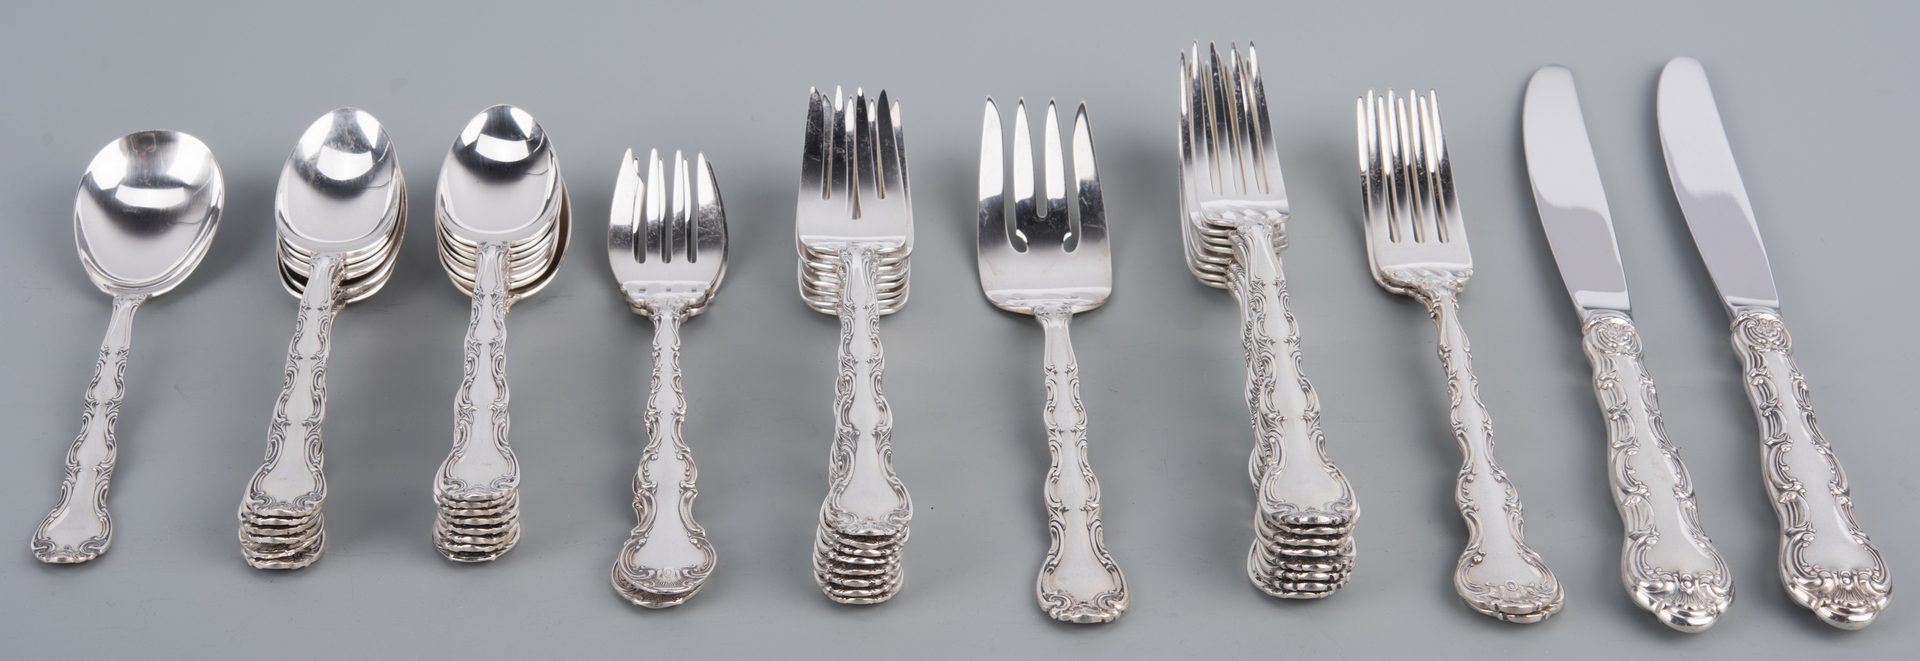 Lot 914: Gorham & Alvin Sterling Flatware, 38 pcs